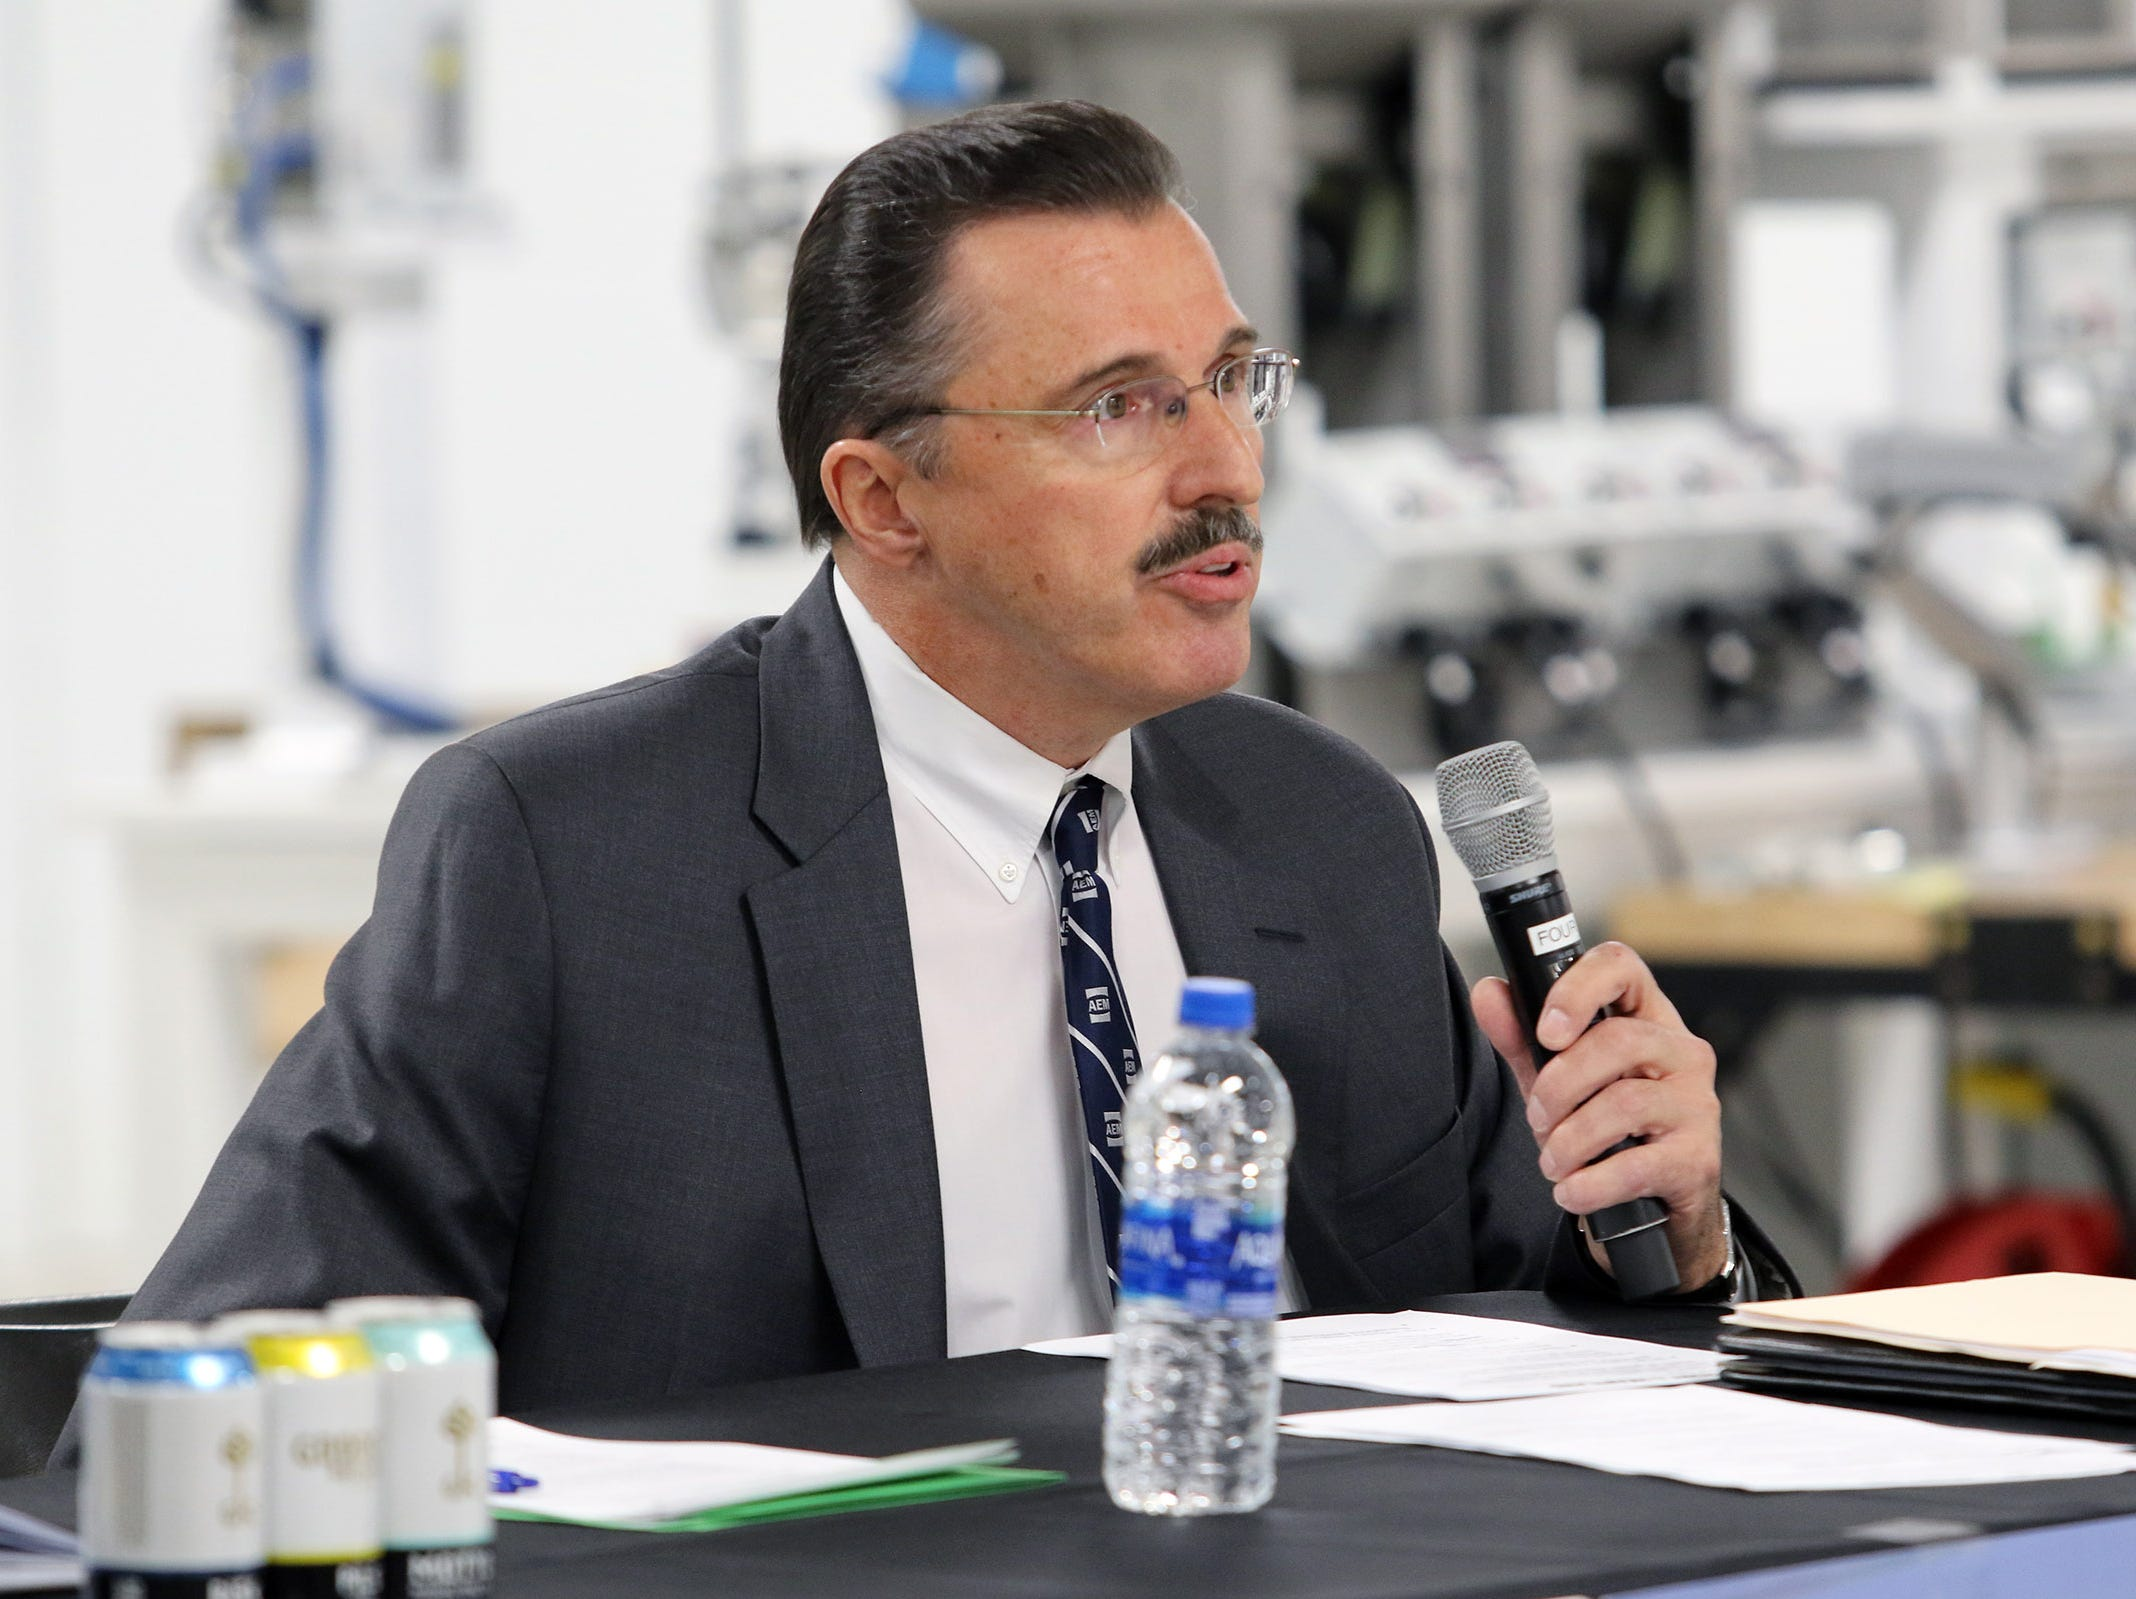 Dennis Slater, president of the Association of Equipment Manufacturers, served as moderator for a panelist discussion on the impact of tariffs on Wisconsin businesses and farmers during a tariff town hall at Husco International, Waukesha, on Oct. 25. The town hall was organized by Tariffs Hurt the Heartland.